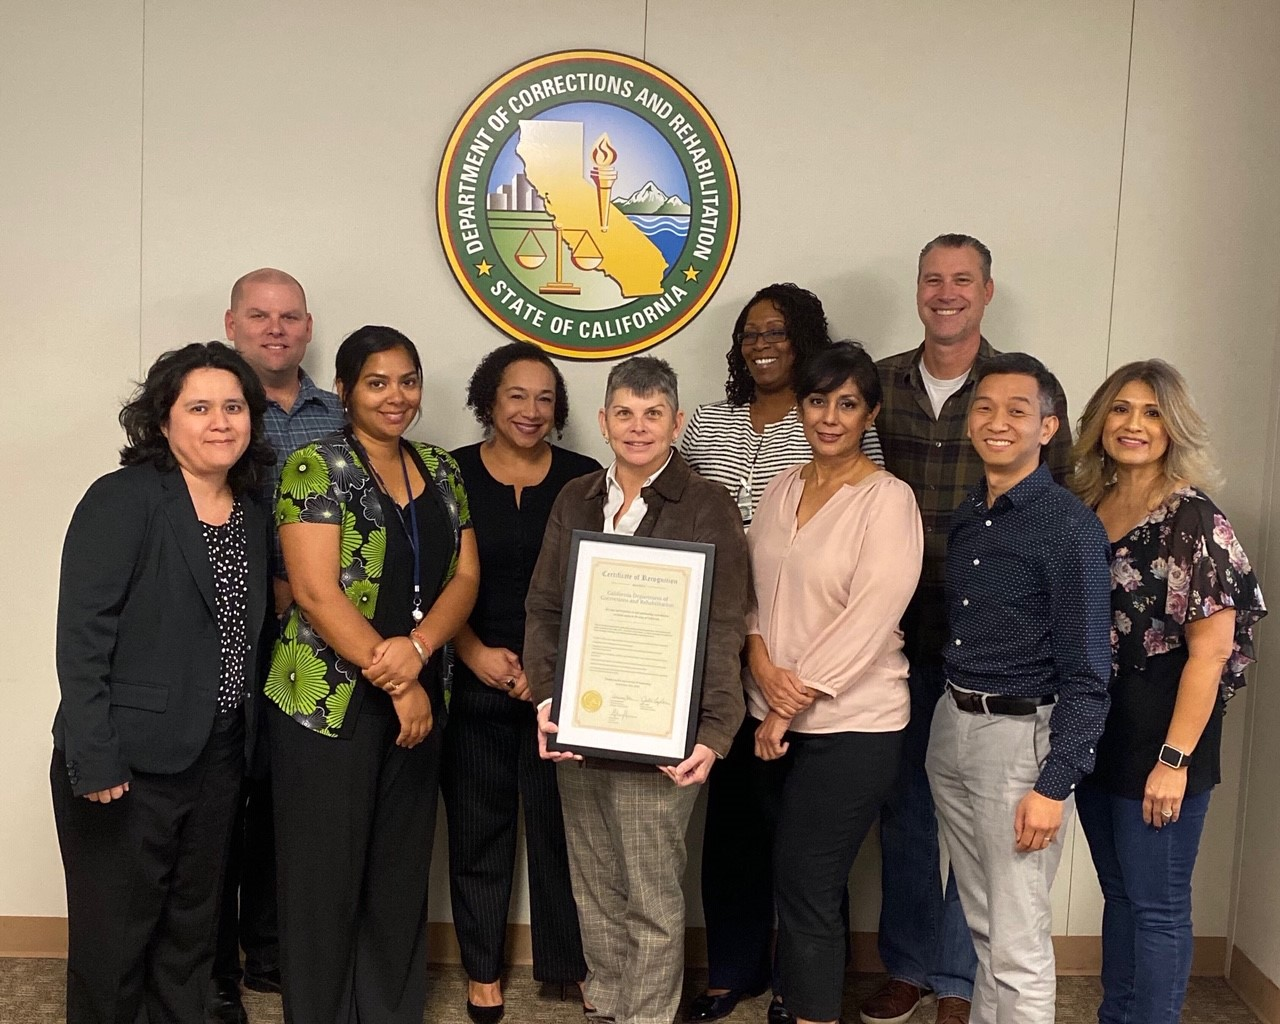 Men and women stand under a CDCR logo while holding a framed certificate.